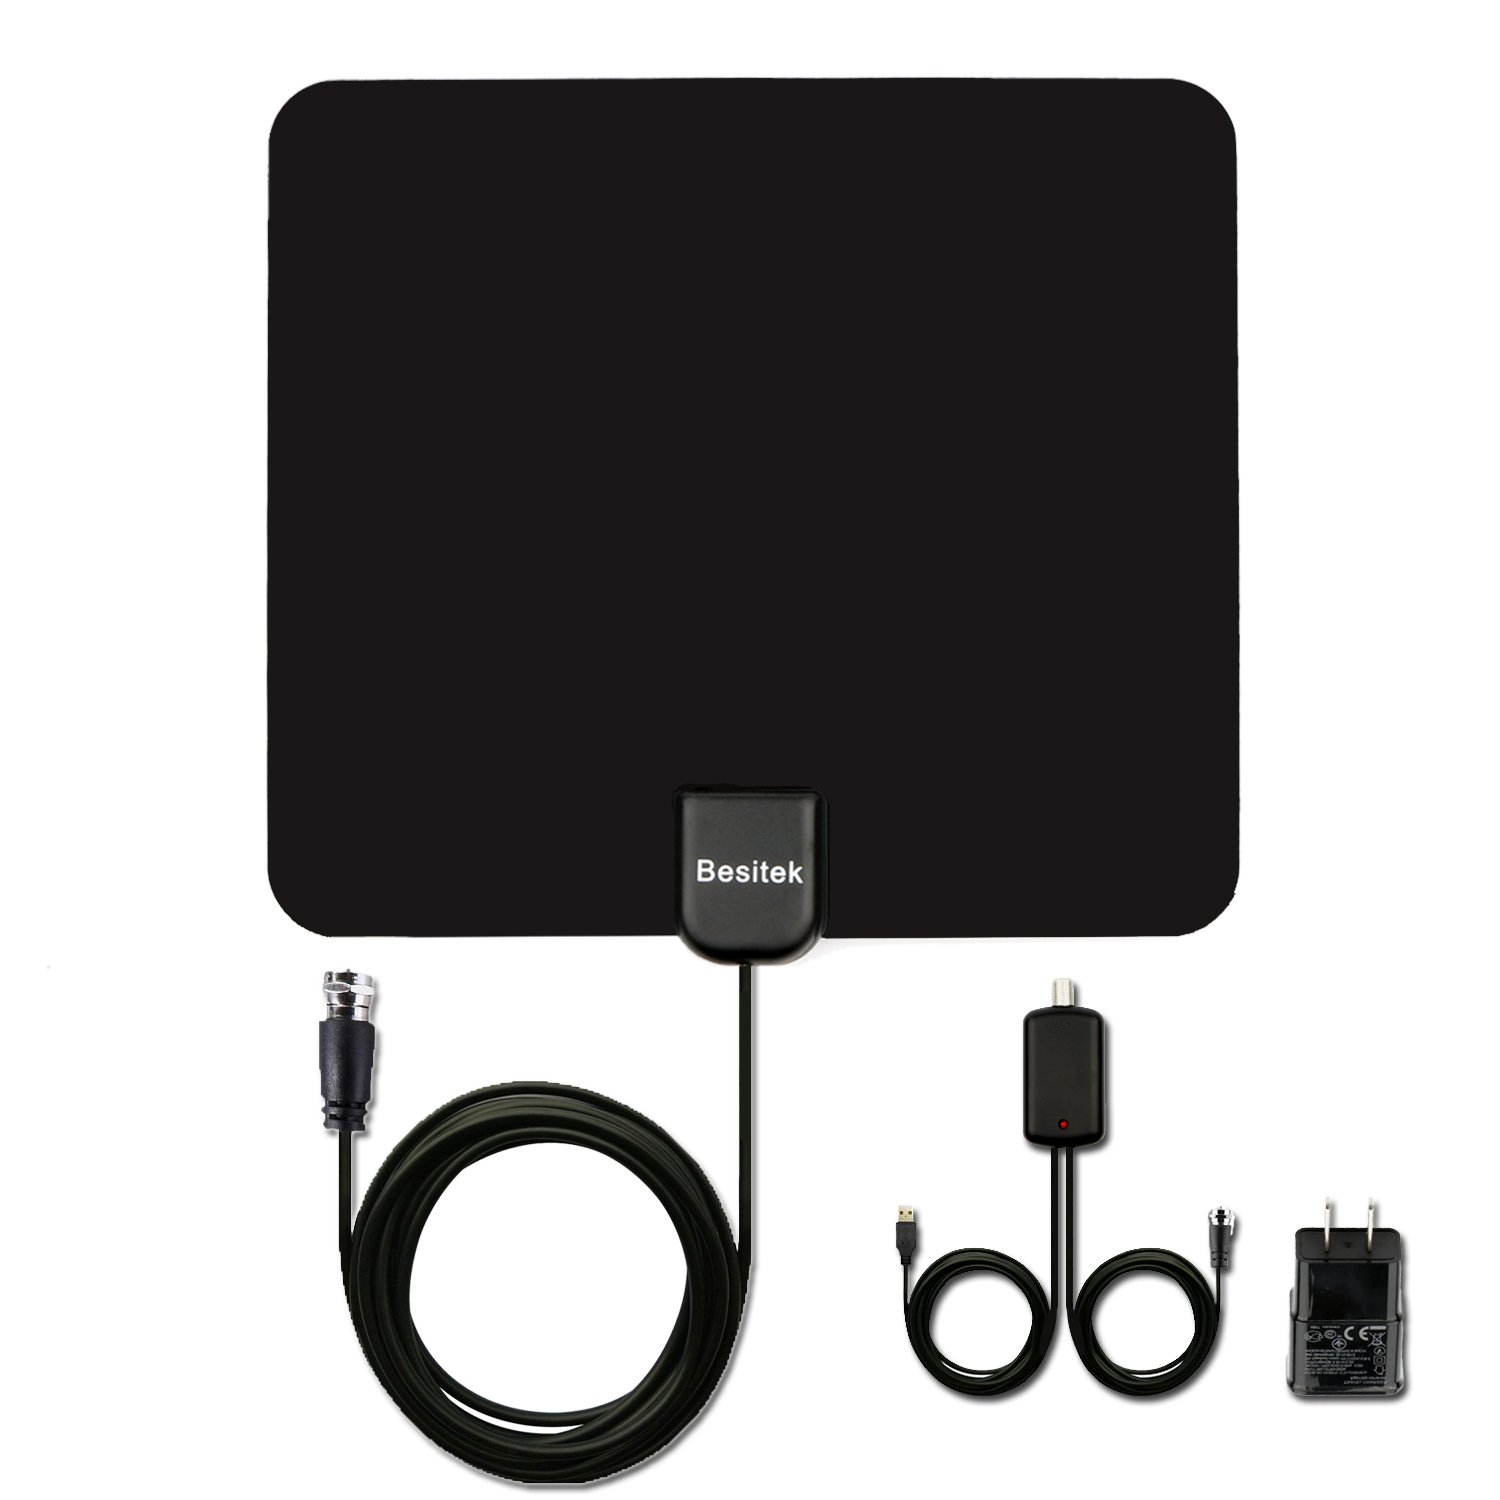 TV antenna, HDTV Indoor Antenna 50 Miles Digital Long Range With Amplifier Signal Booster Upgraded Version-10ft Coax Cable